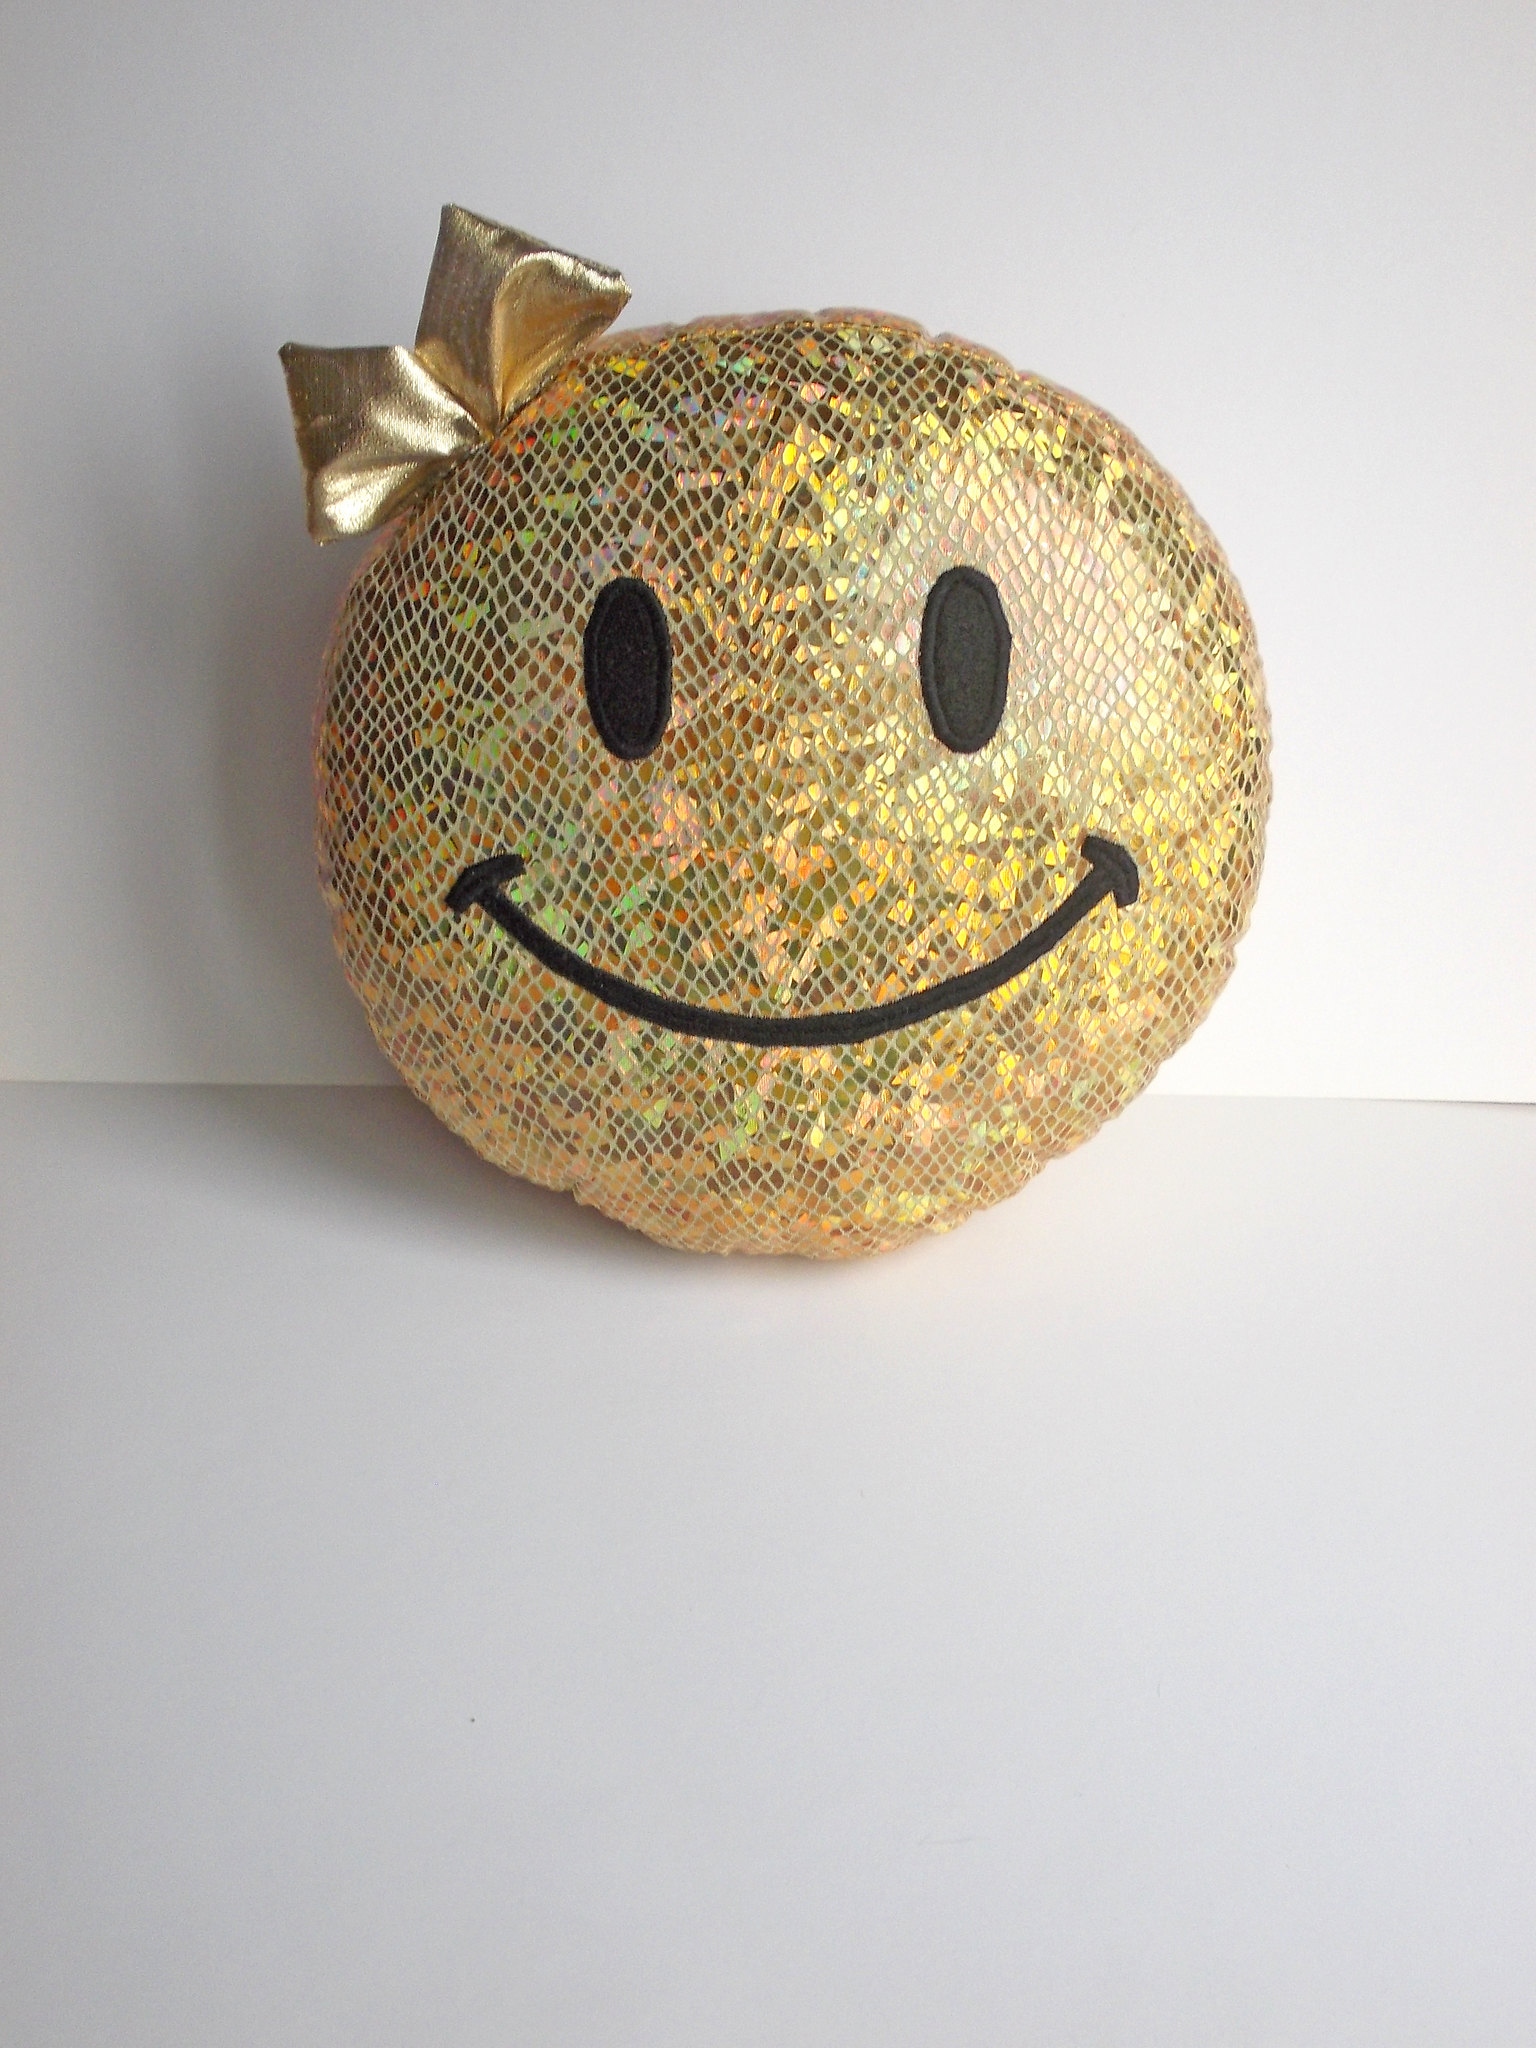 hologram smiley face, golden smiley stuffed toy_6